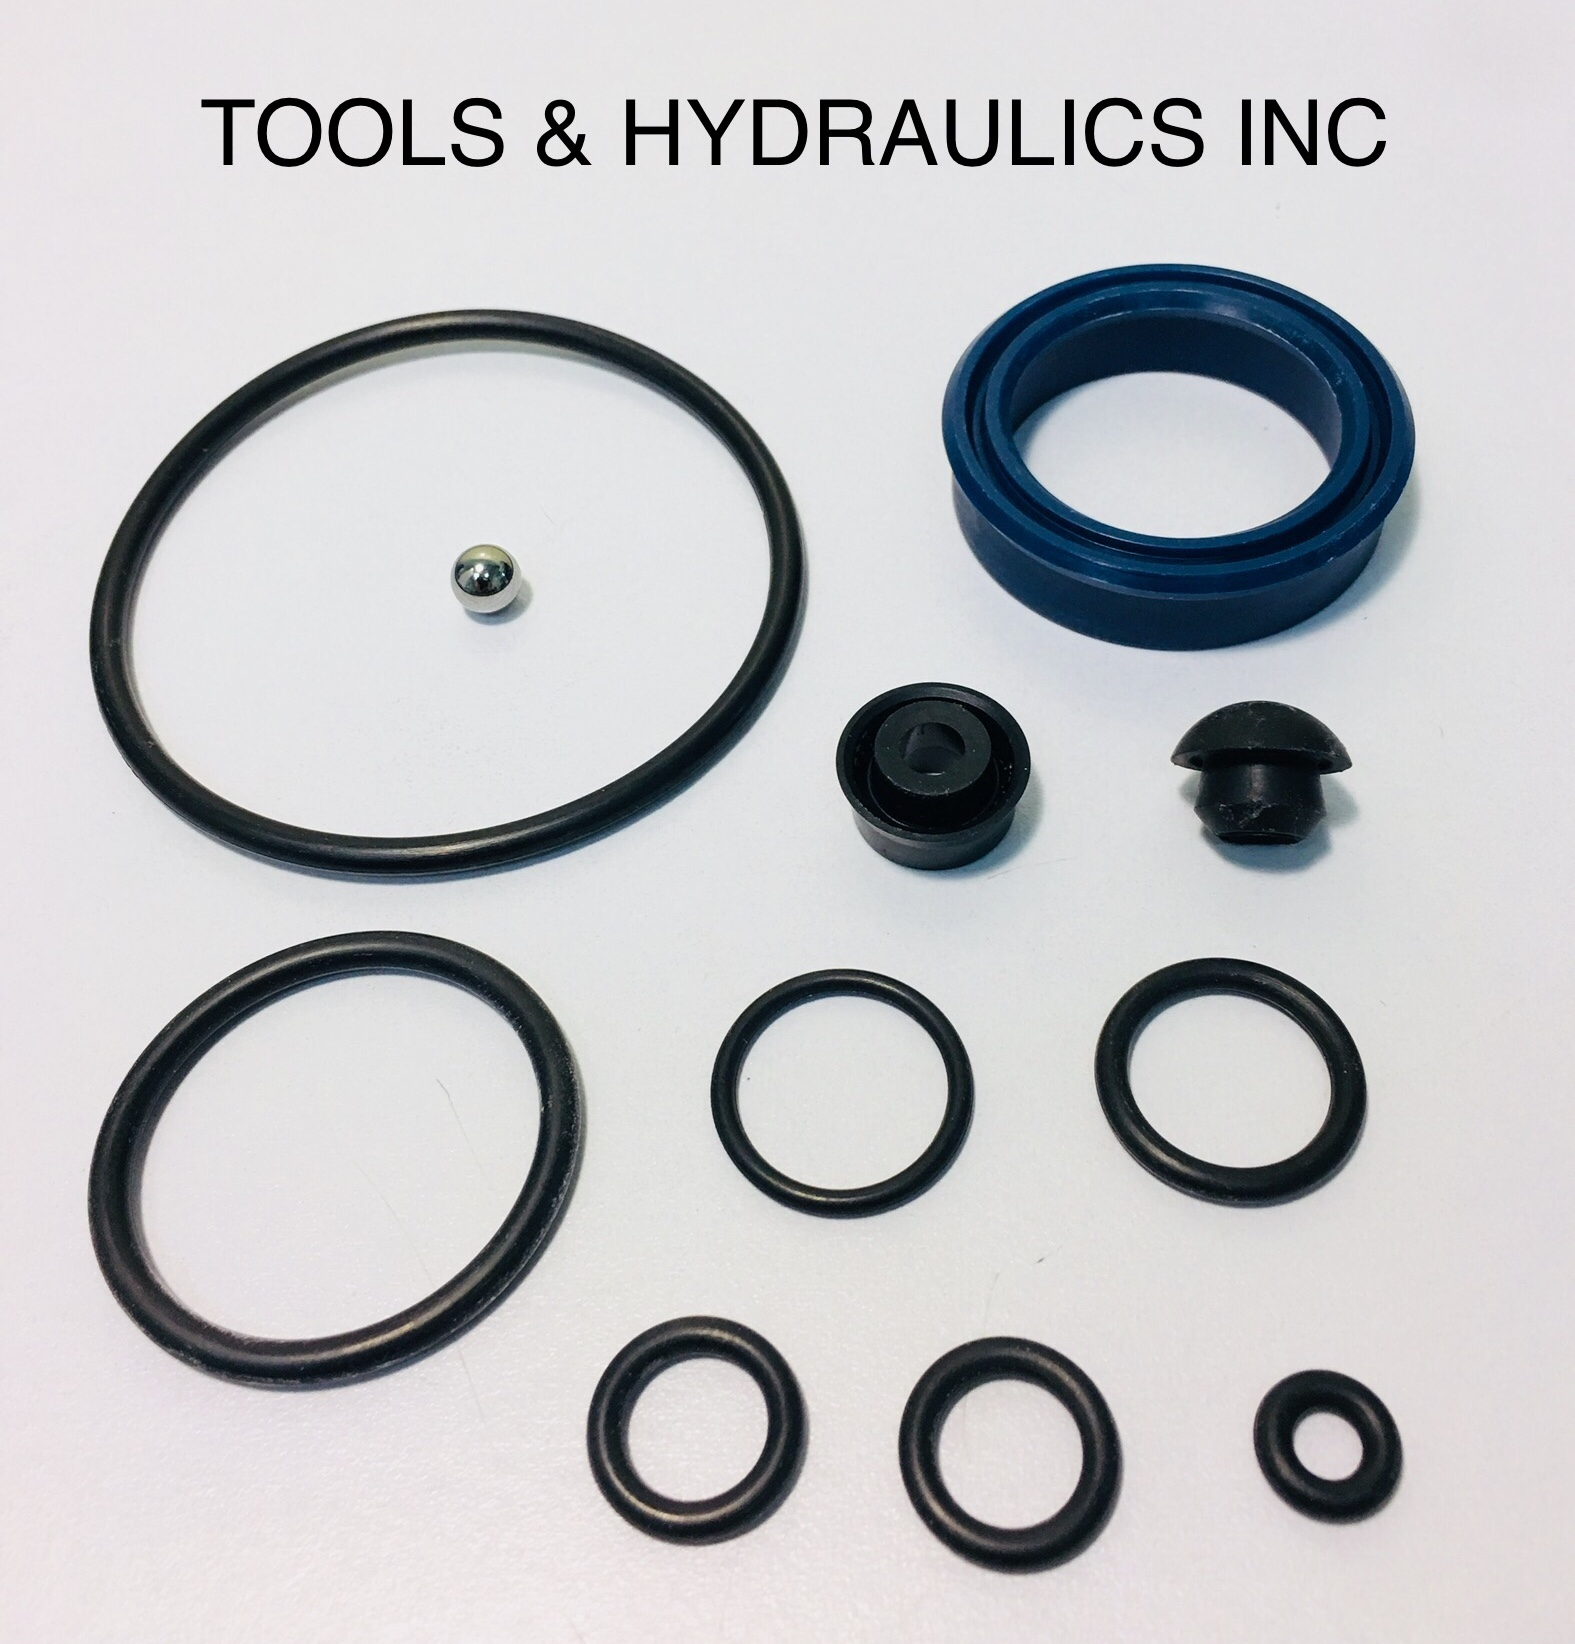 Popular Coats/Nike/Viking/Watco jack repair Kits